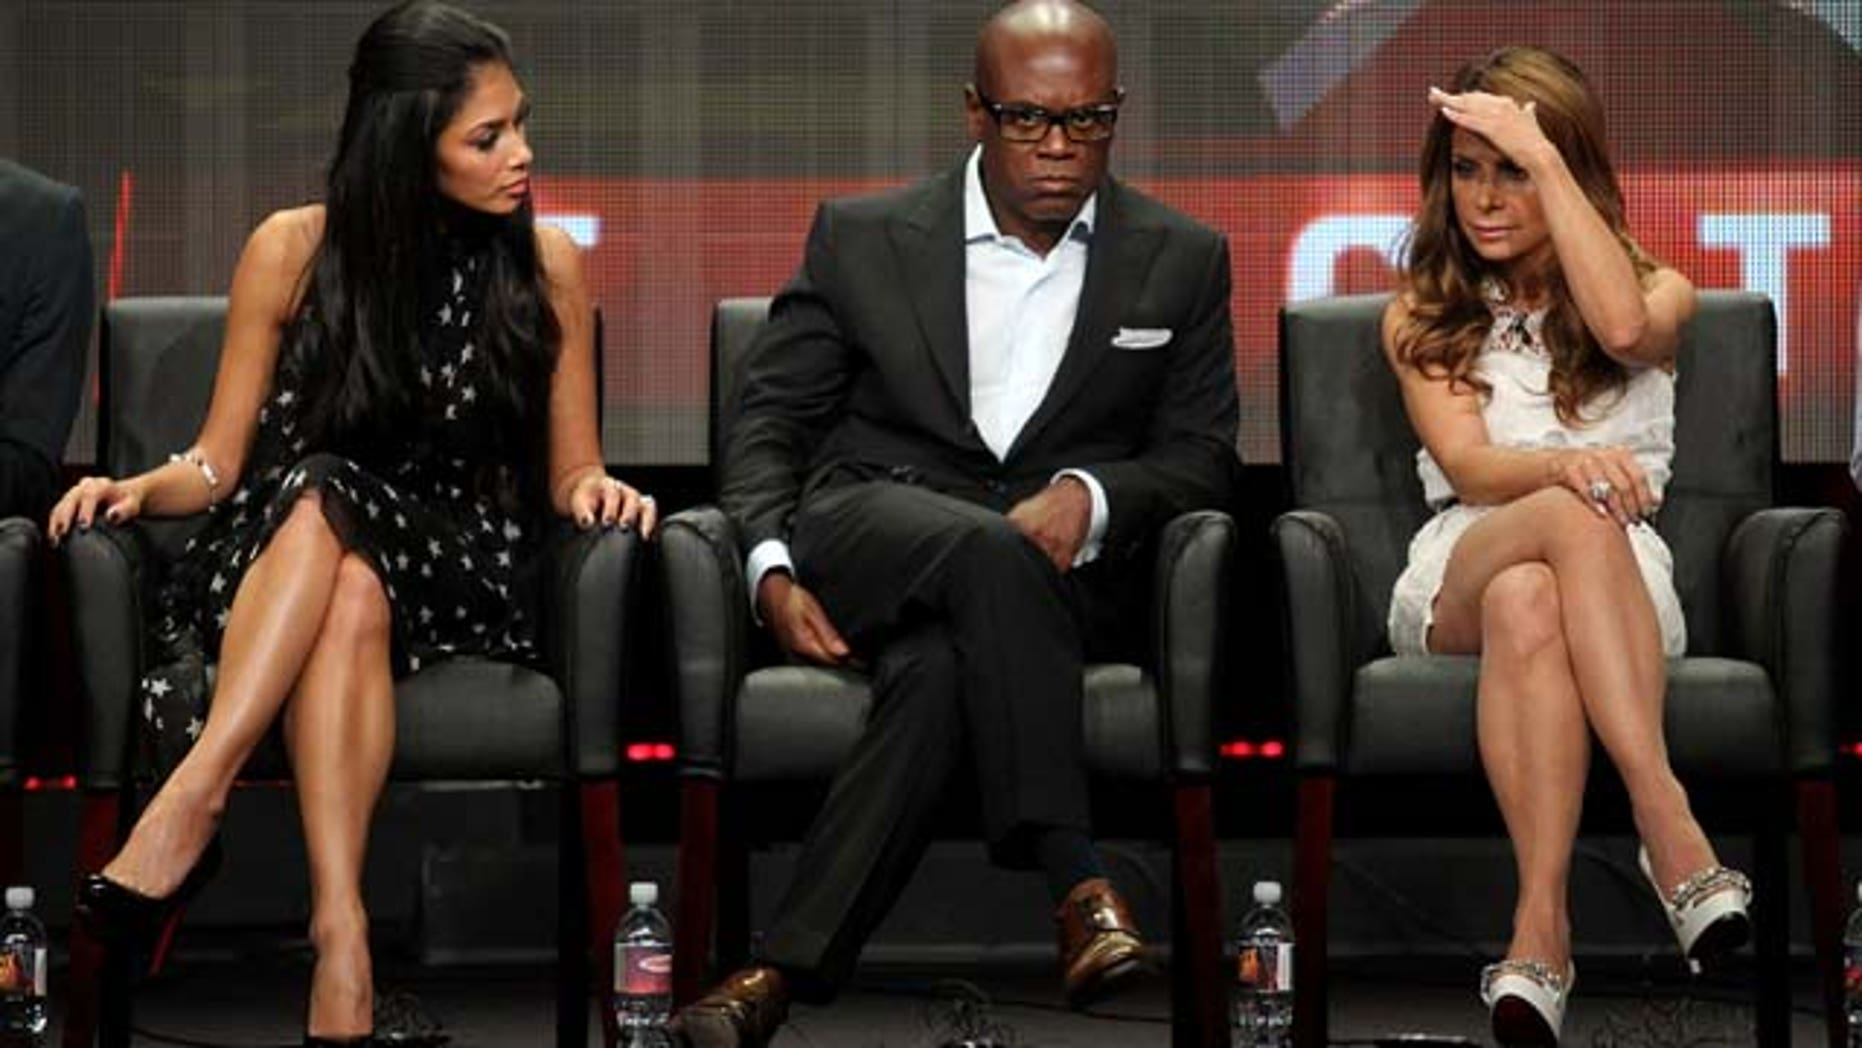 Aug. 5, 2011: TV personalities Nicole Scherzinger, L.A. Reid and Paula Abdul speak onstage at 'The X Factor' panel during the FOX portion of the 2011 Summer TCA Tour at the Beverly Hilton Hotel in Beverly Hills, Calif.